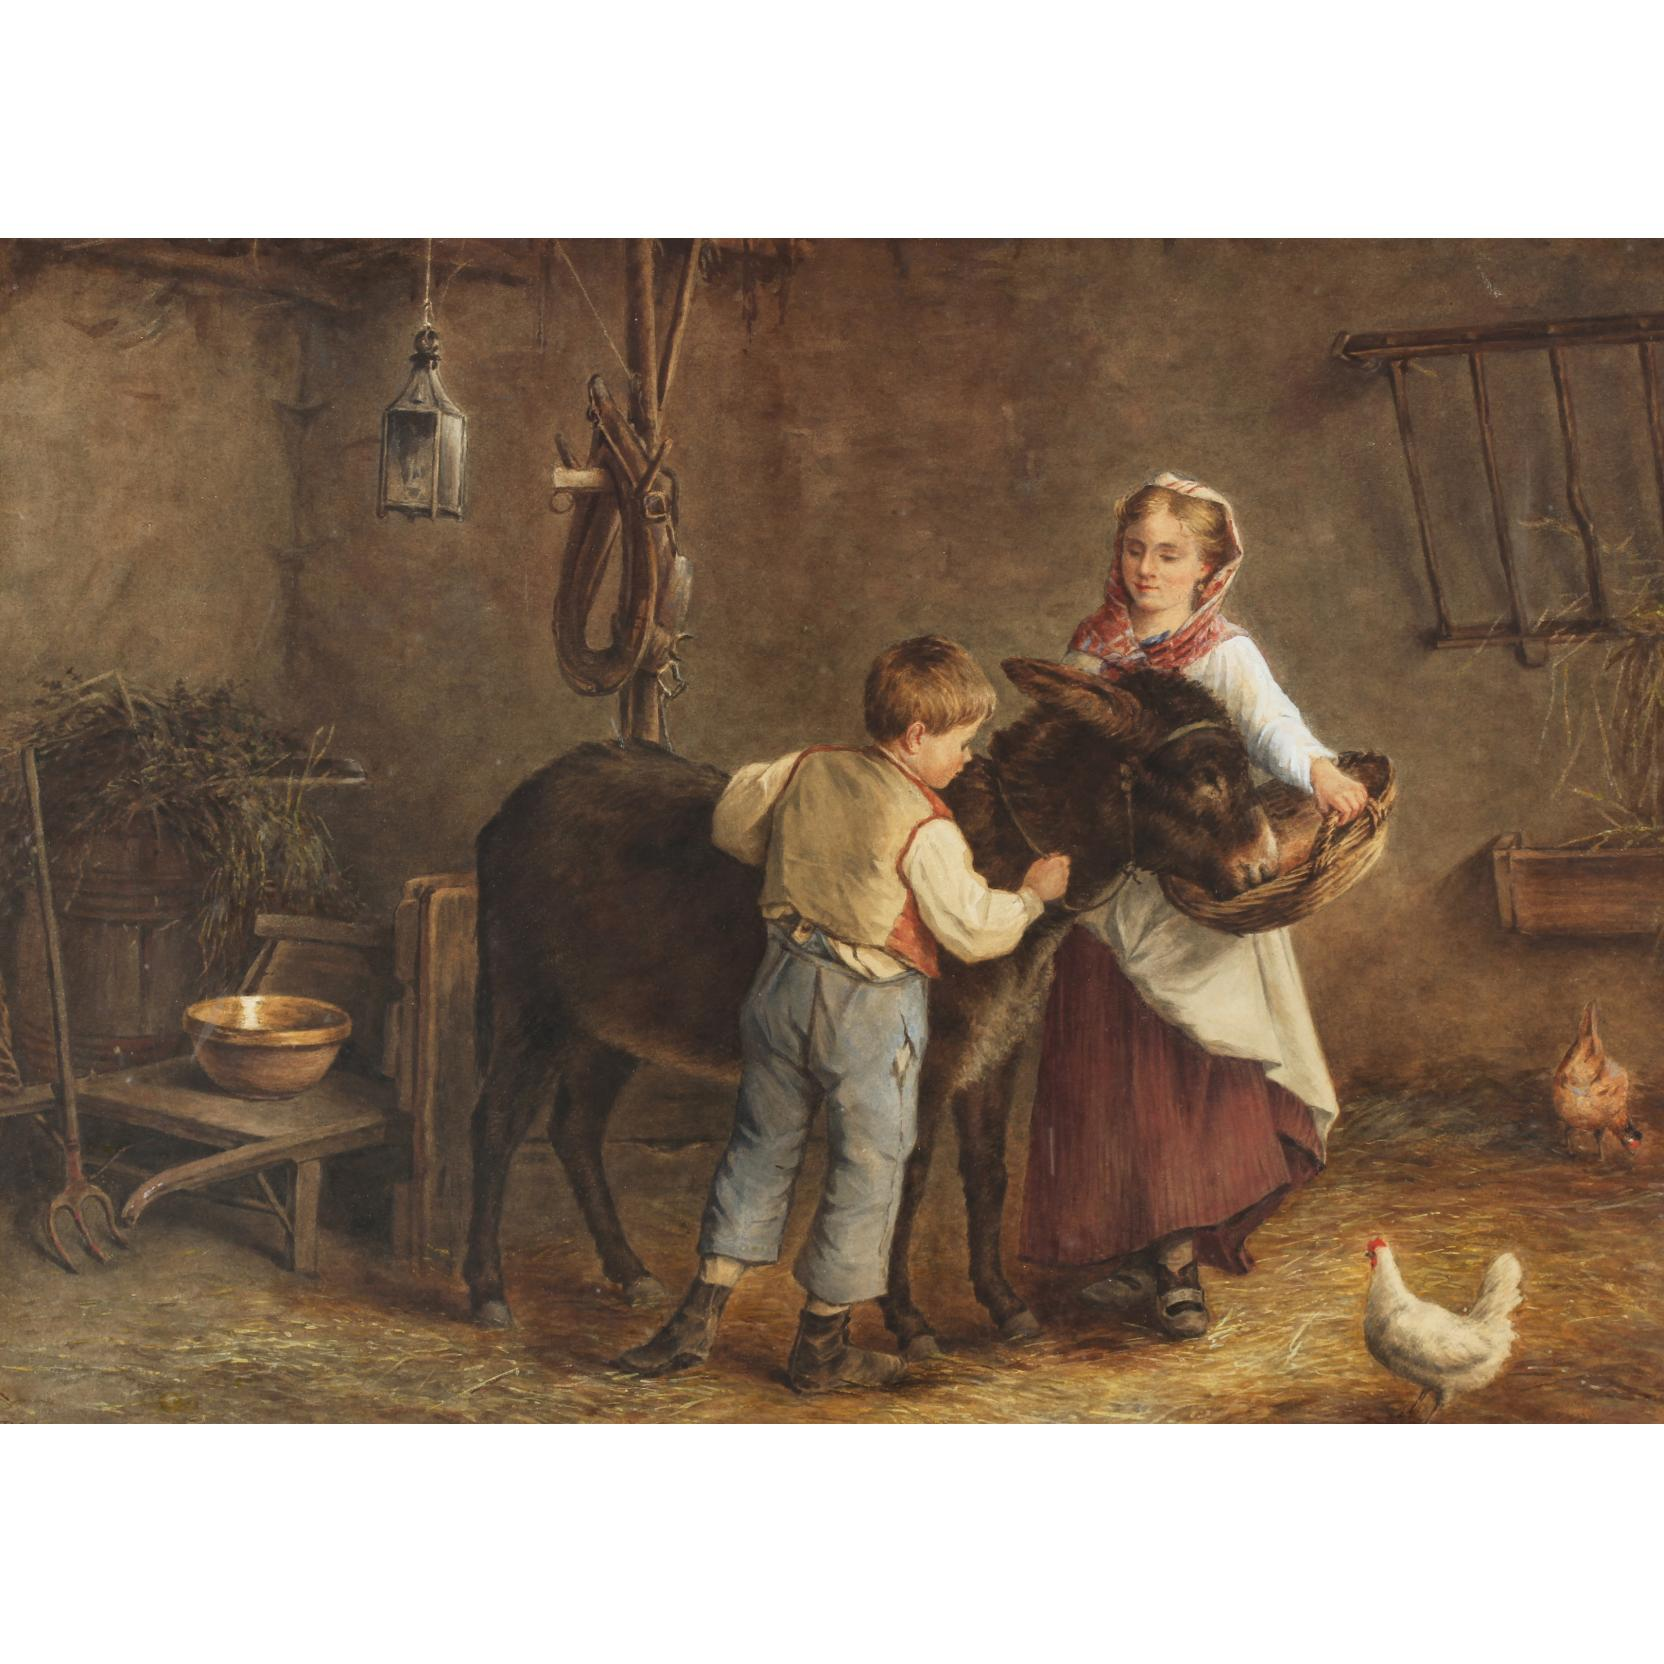 philippe-frana-ois-sauvage-french-19th-century-feeding-time